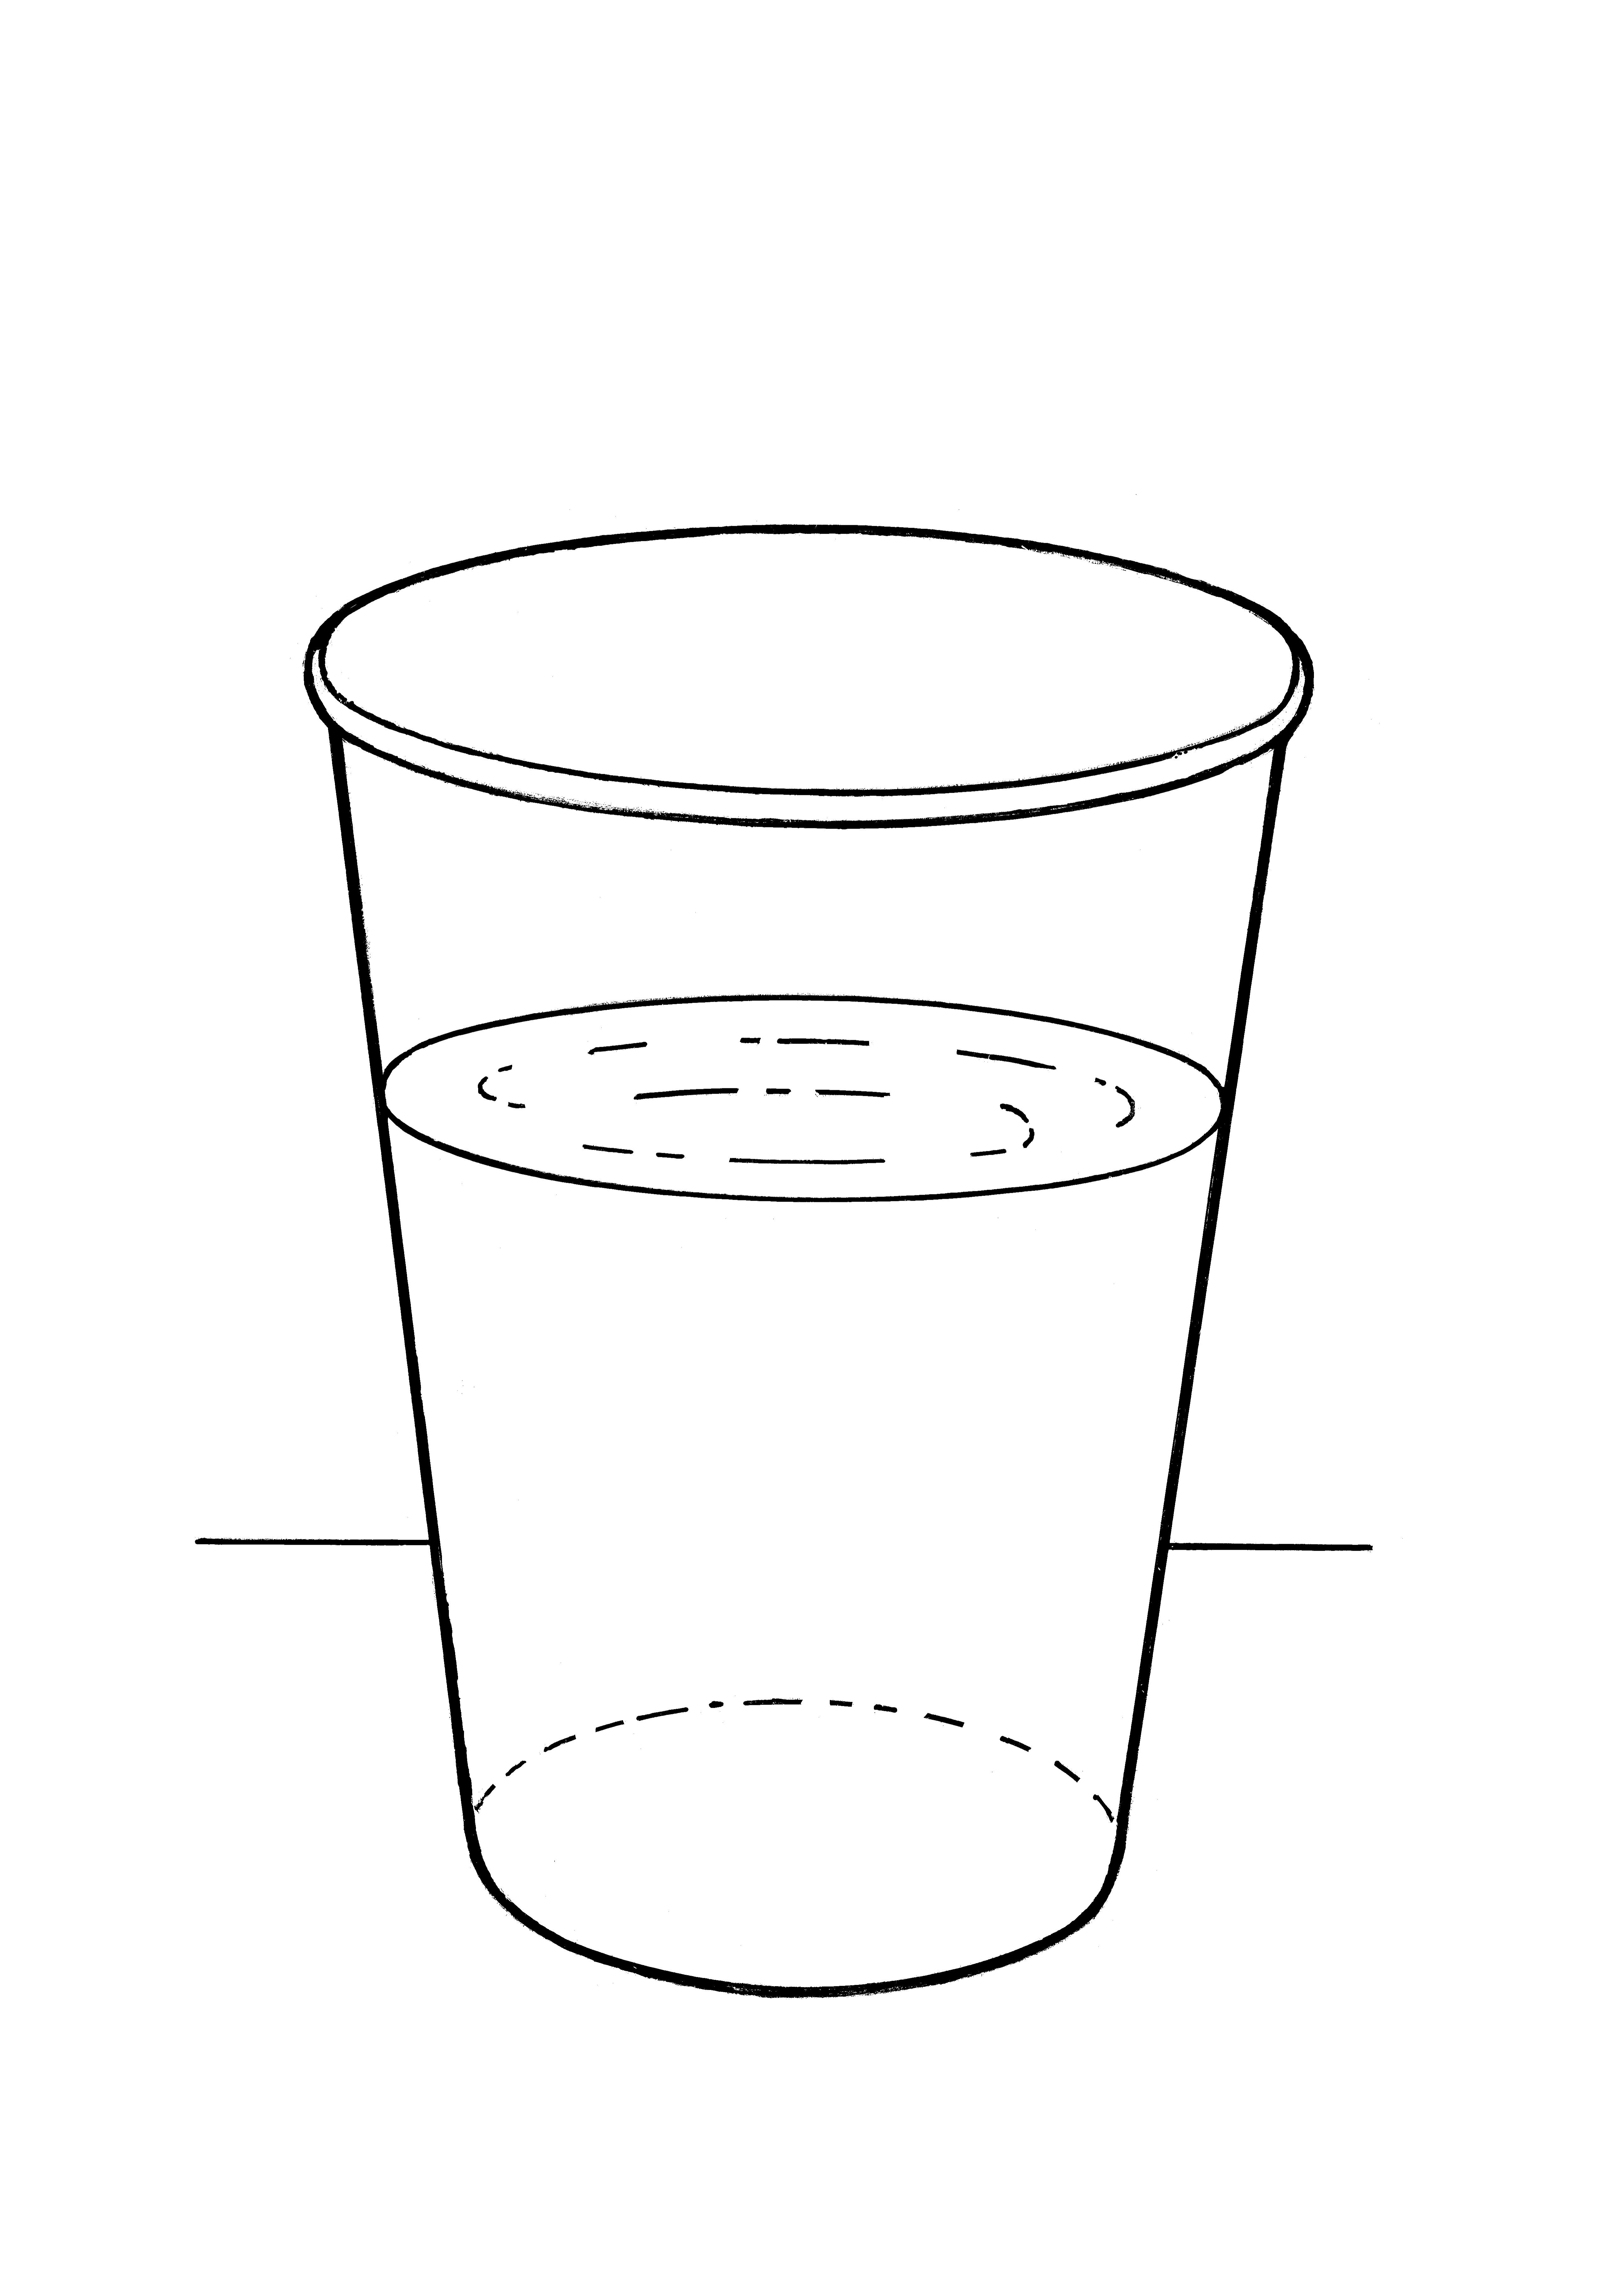 An illustration of a glass of water.